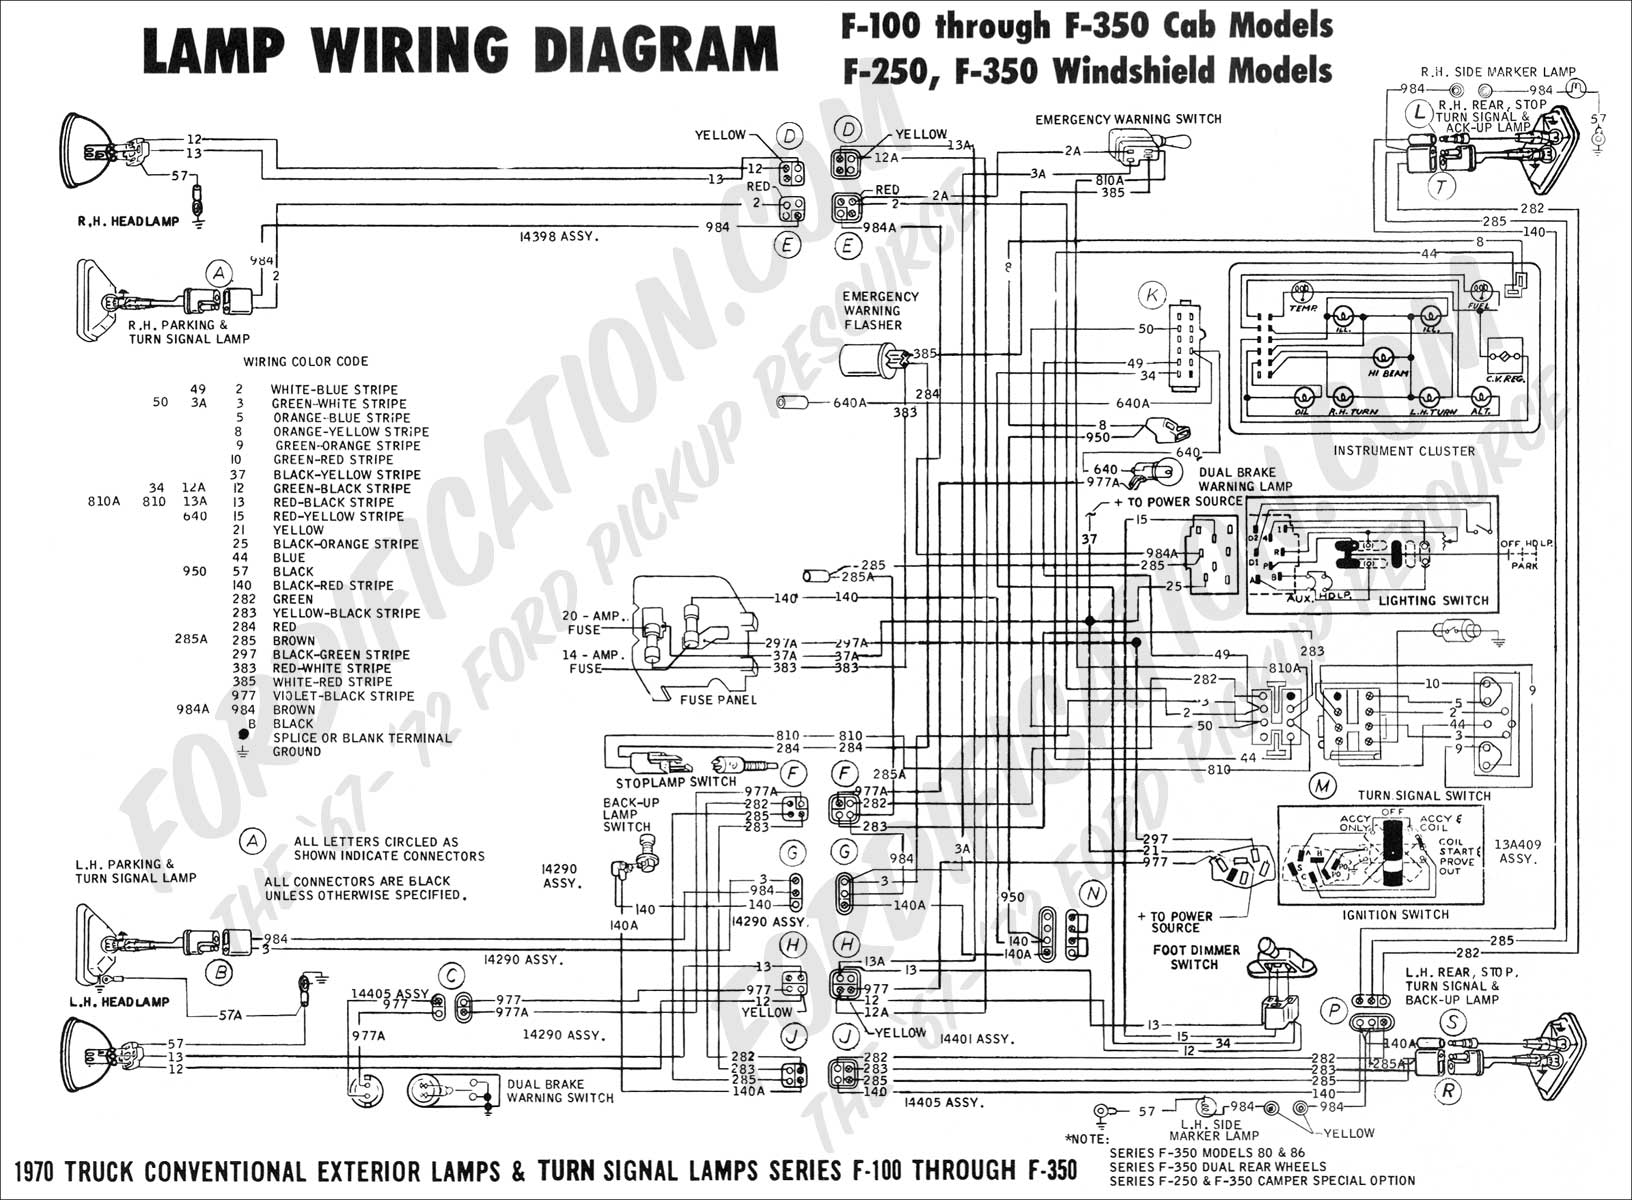 ford f trailer wiring diagram meetcolab 1999 ford f350 trailer wiring diagram 1970 f 100 f250 lamp wiring